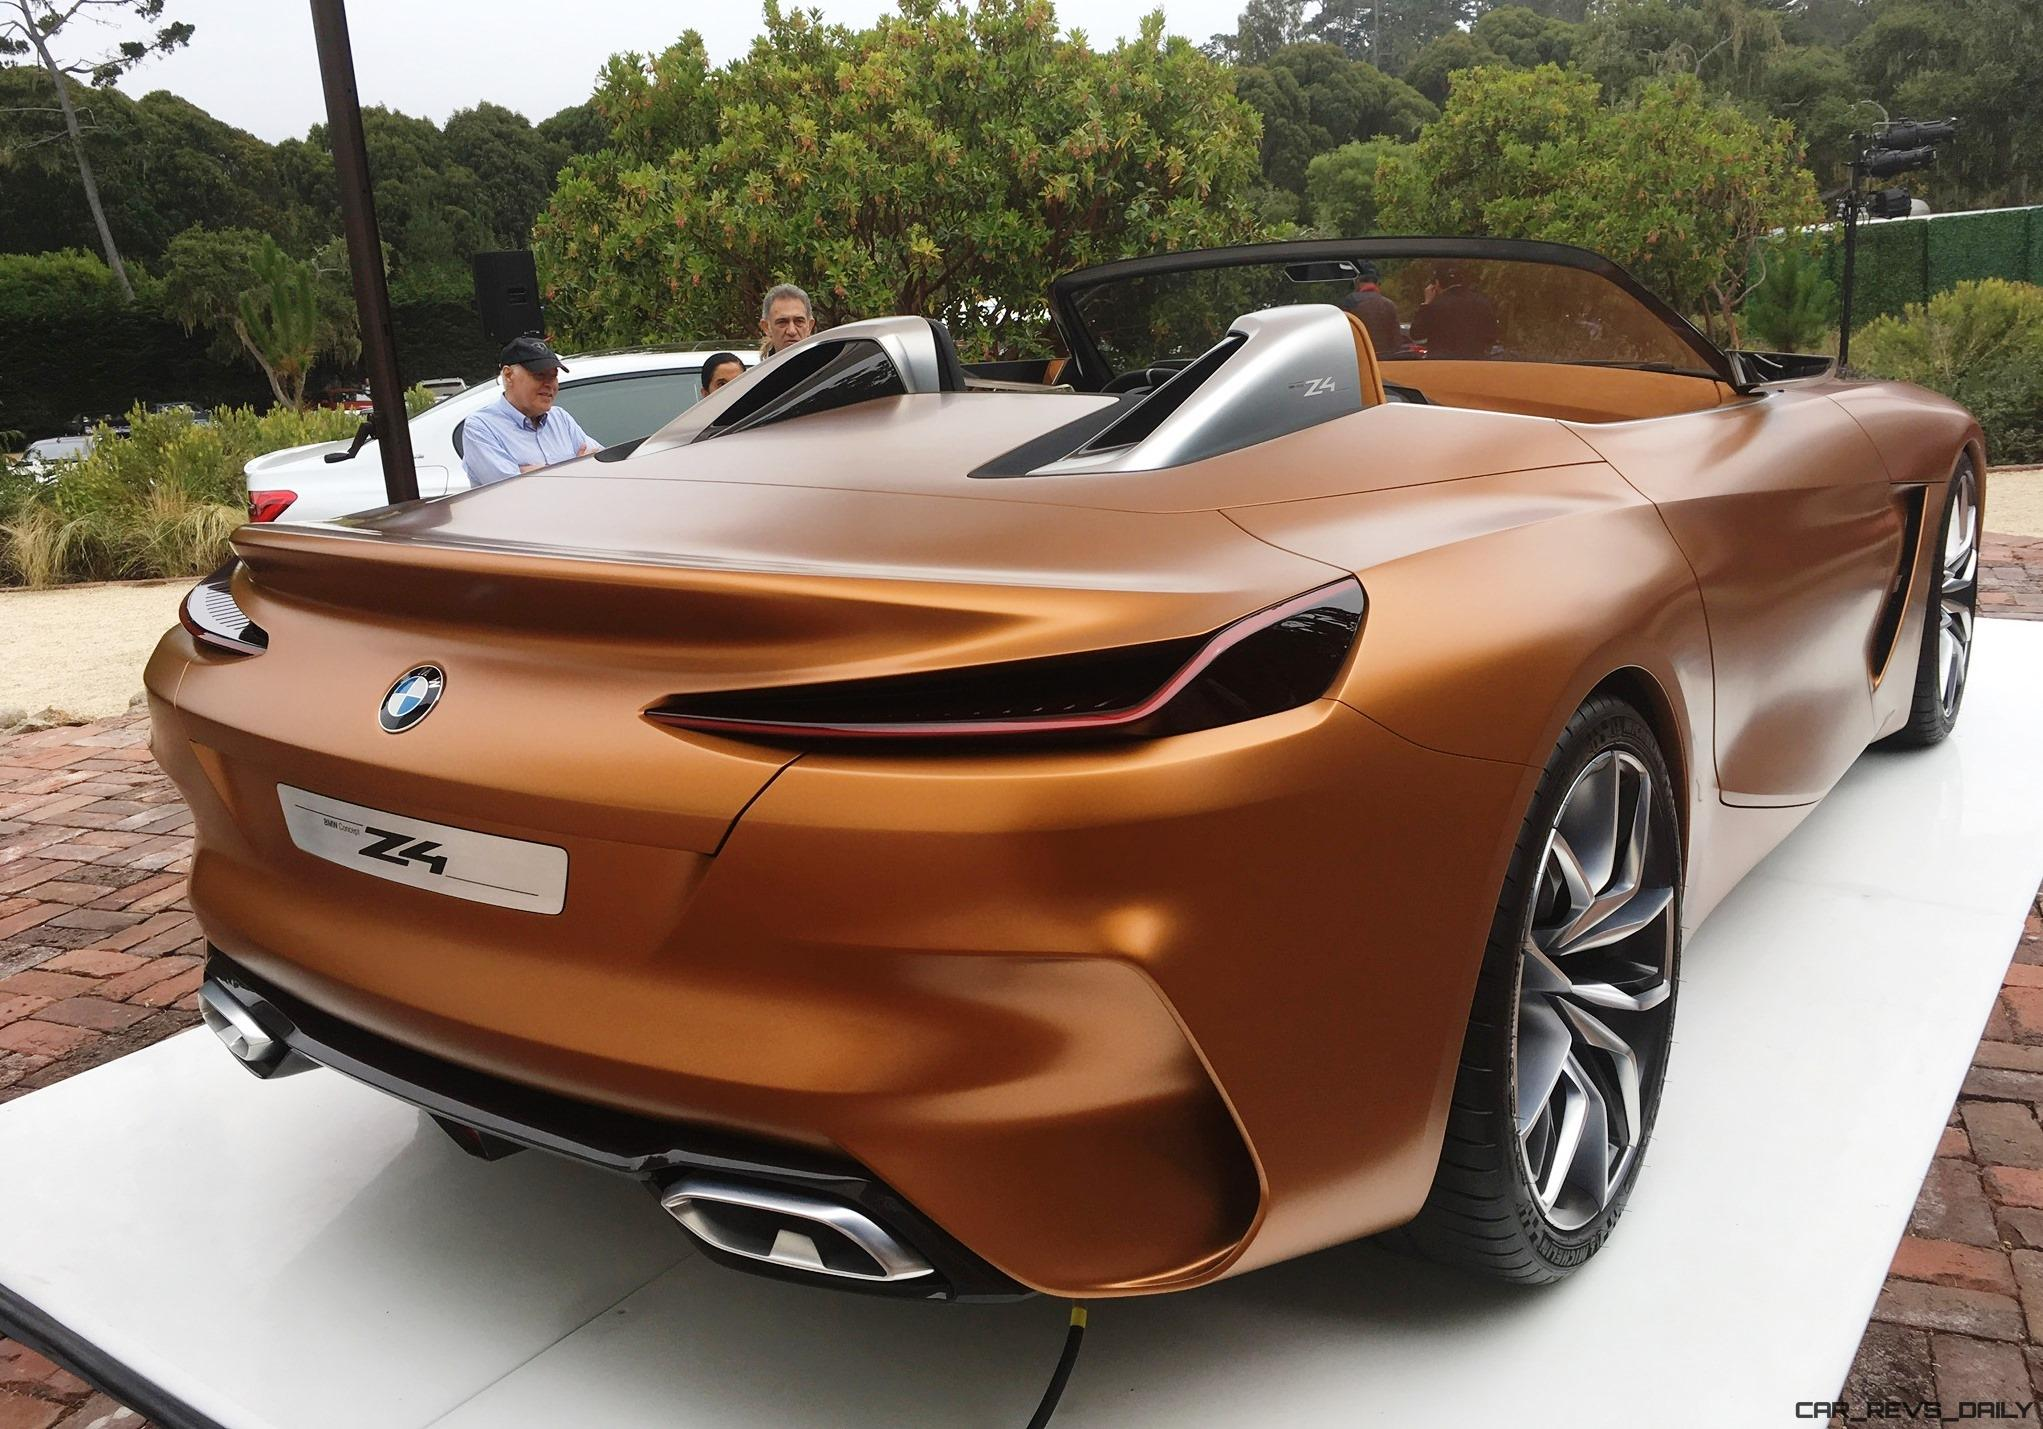 new bmw z4 concept depth review interior exterior and design. Black Bedroom Furniture Sets. Home Design Ideas